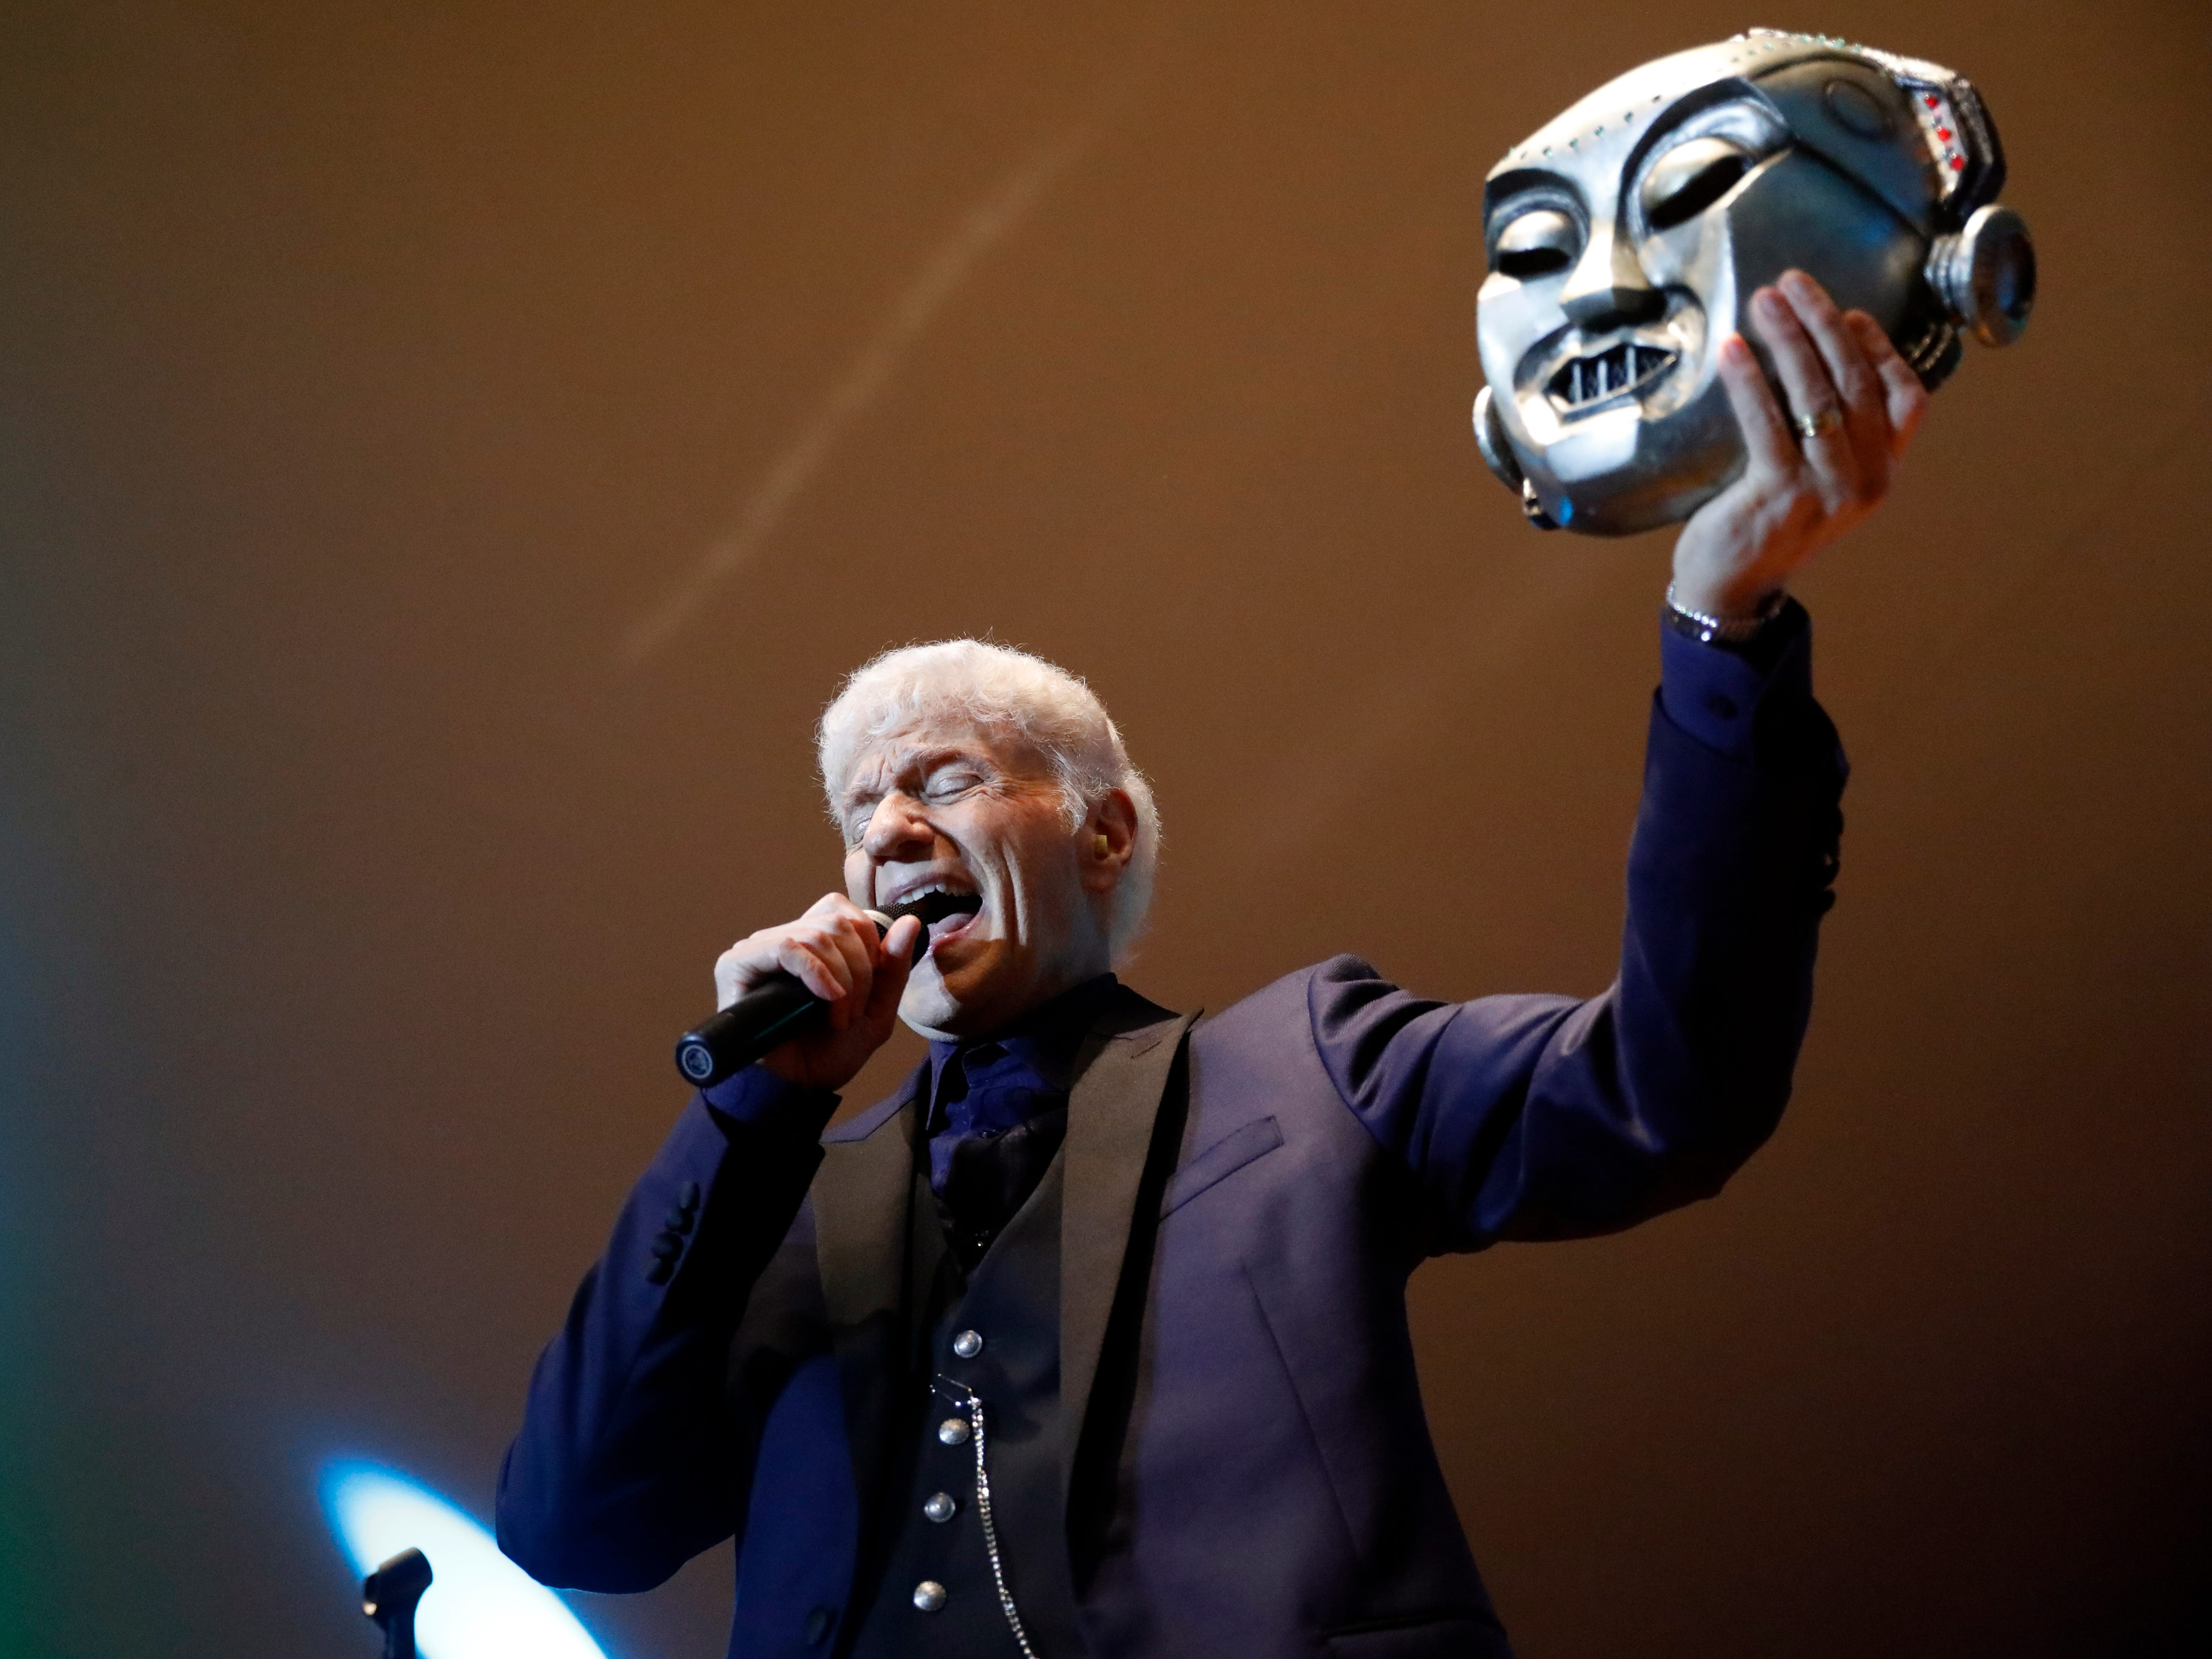 """Dennis DeYoung holds up a Kilroy mask as he sings """"Mr. Roboto"""" during a concert Saturday night, July 21, 2018, at the Ohio University Lancaster Wendel Concert Stage in Lancaster. DeYoung performed the first headline concert of the 2018 Lancaster Festival."""